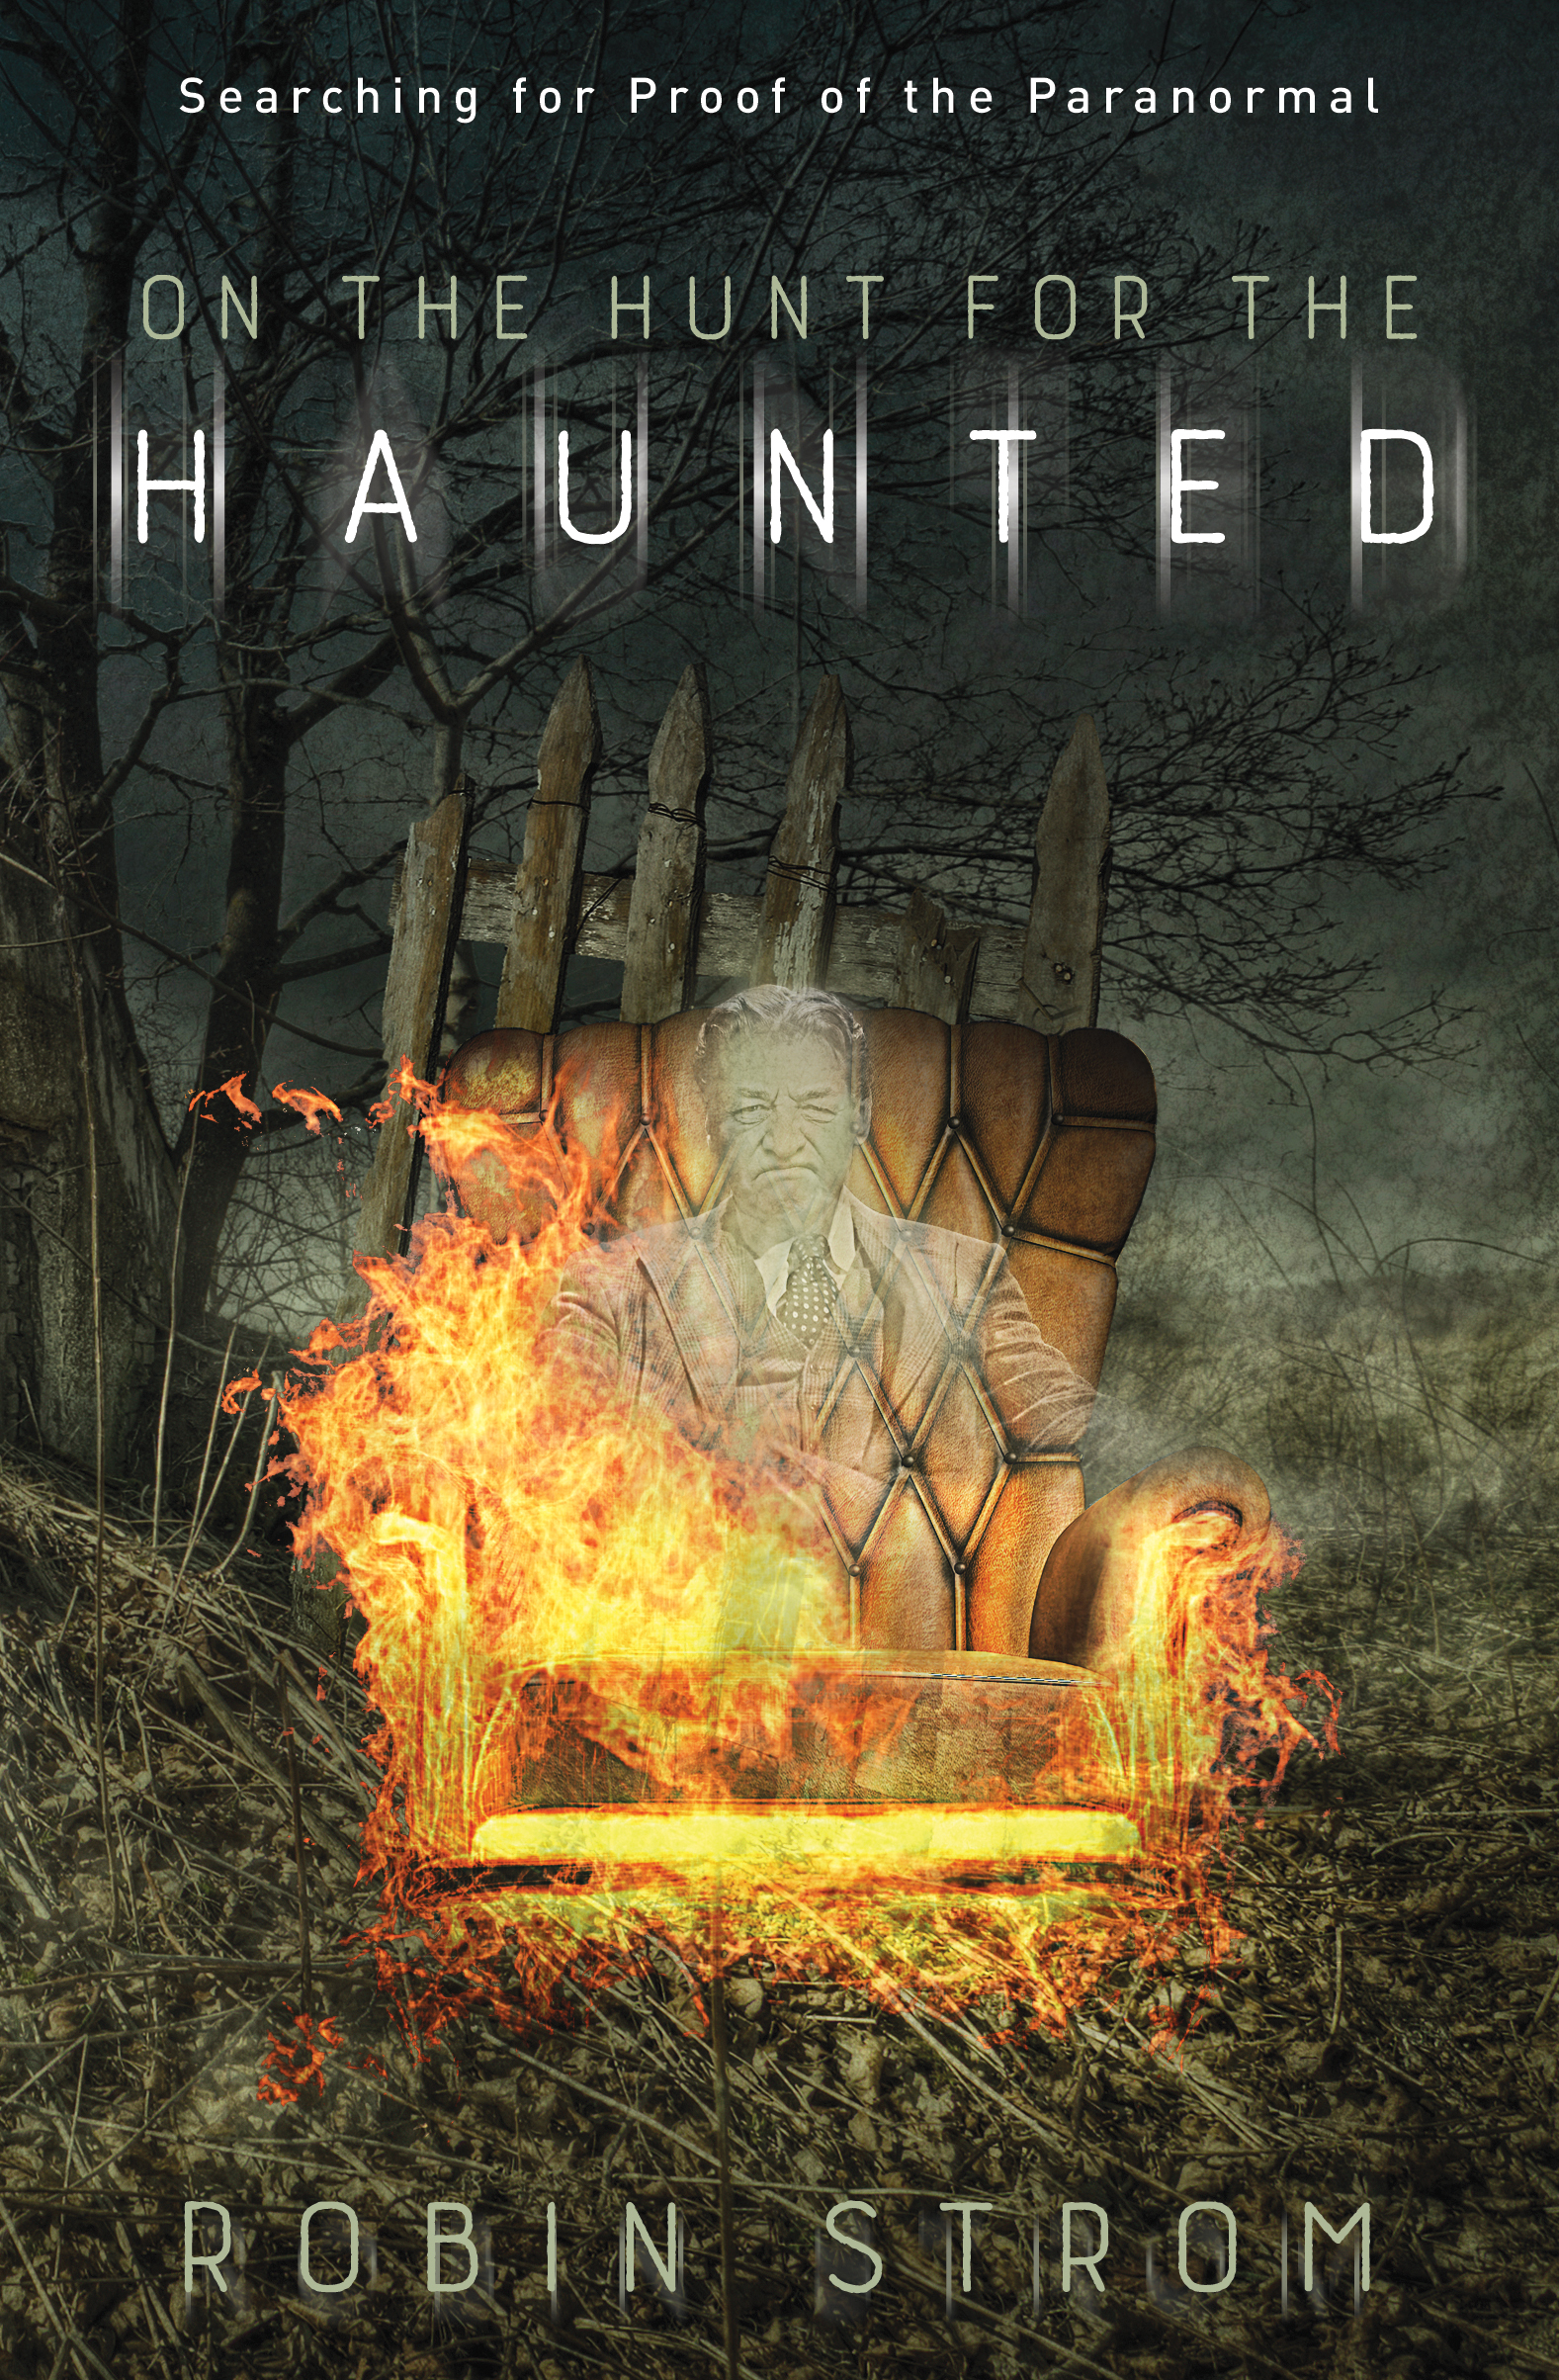 ON THE HUNT FOR THE HAUNTED with Author/Investigator Robin Strom on After Hours AM/America's Most Haunted Radio